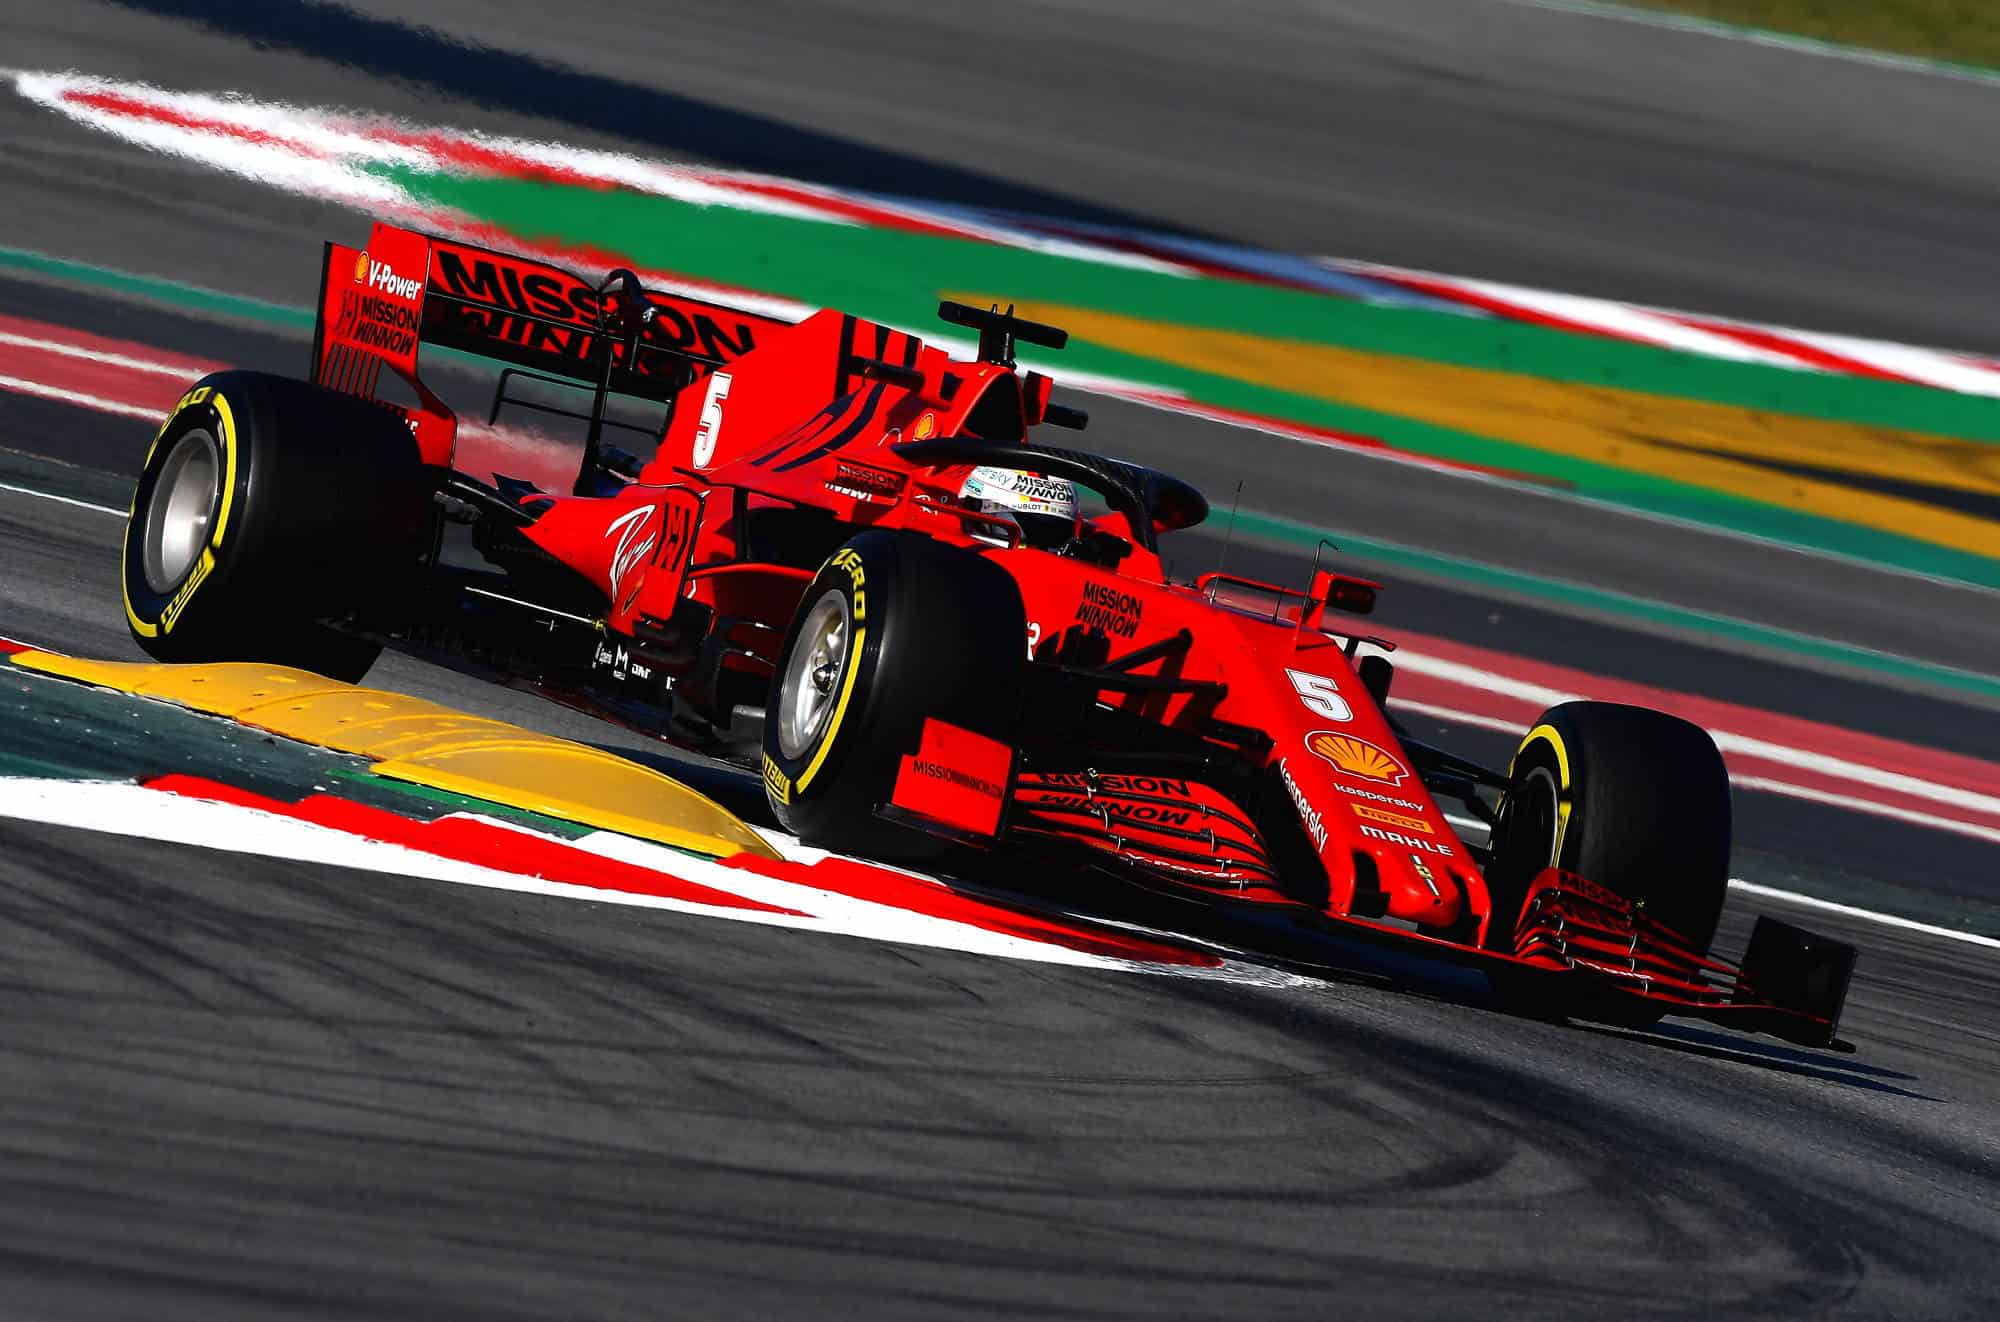 Sebastian-Vettel-Ferrari-SF1000-Barcelona-Test-1-Day-3-Photo-Ferrari